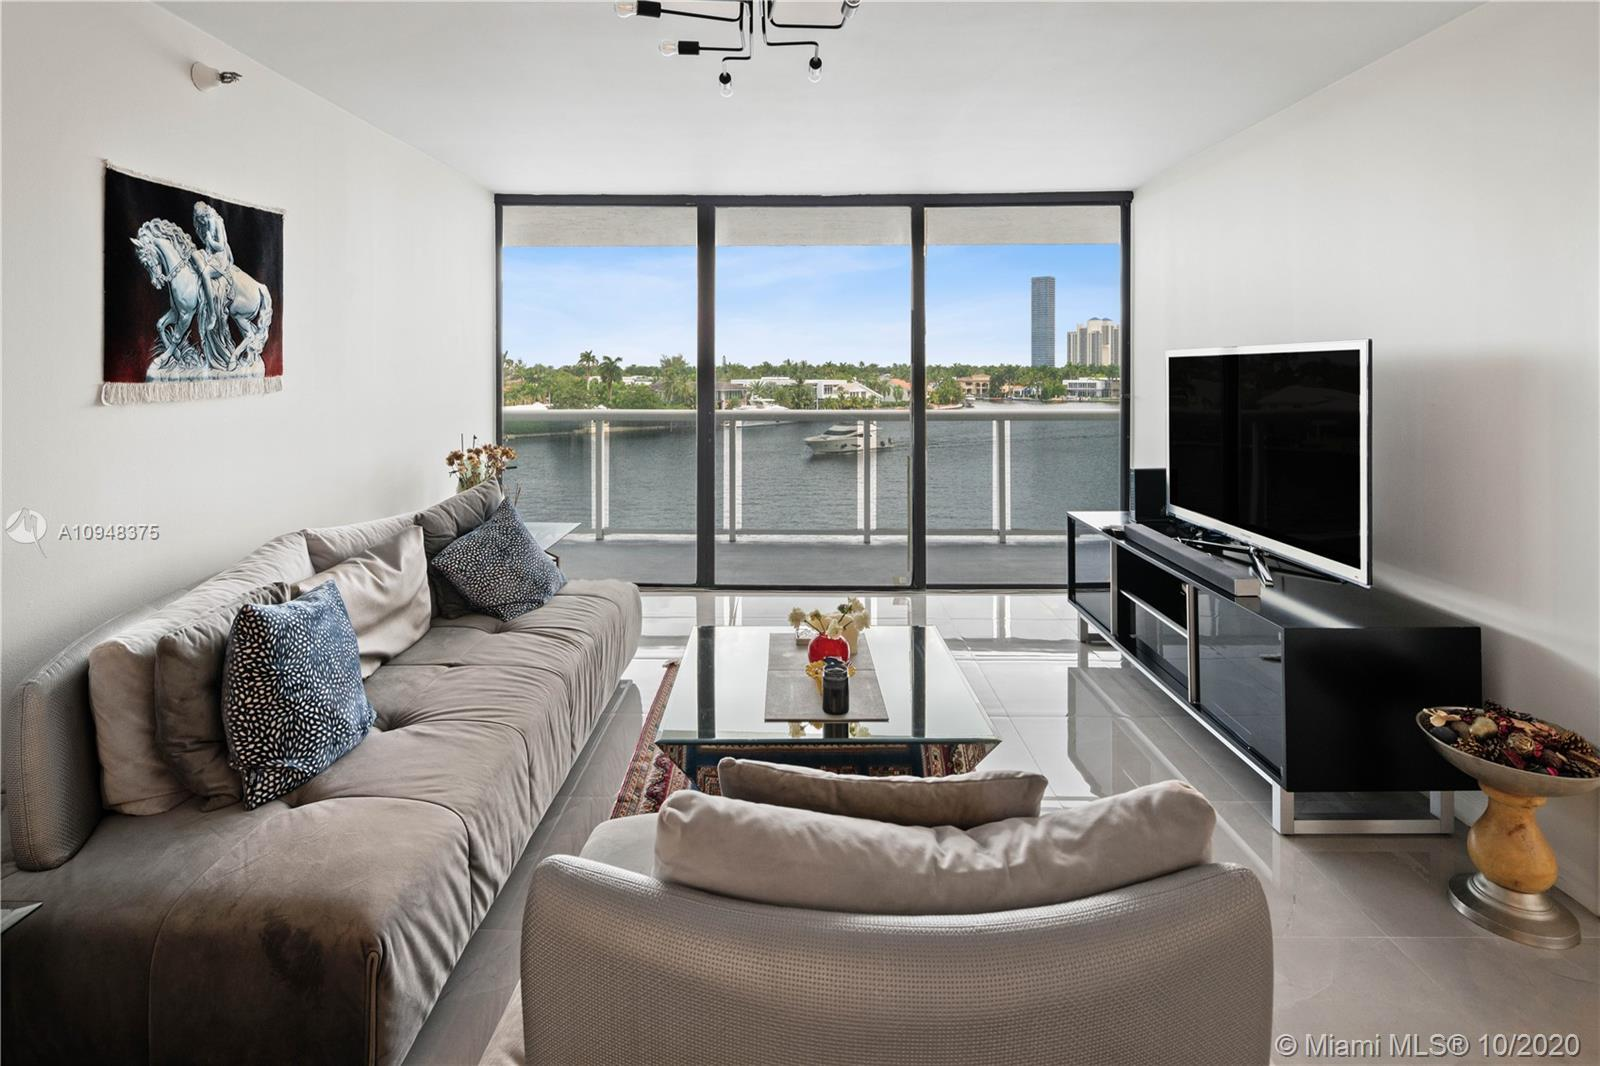 Welcome to this gorgeous gut renovated 2 bedrooms / 2 baths apartment at the famous Waterview Condom